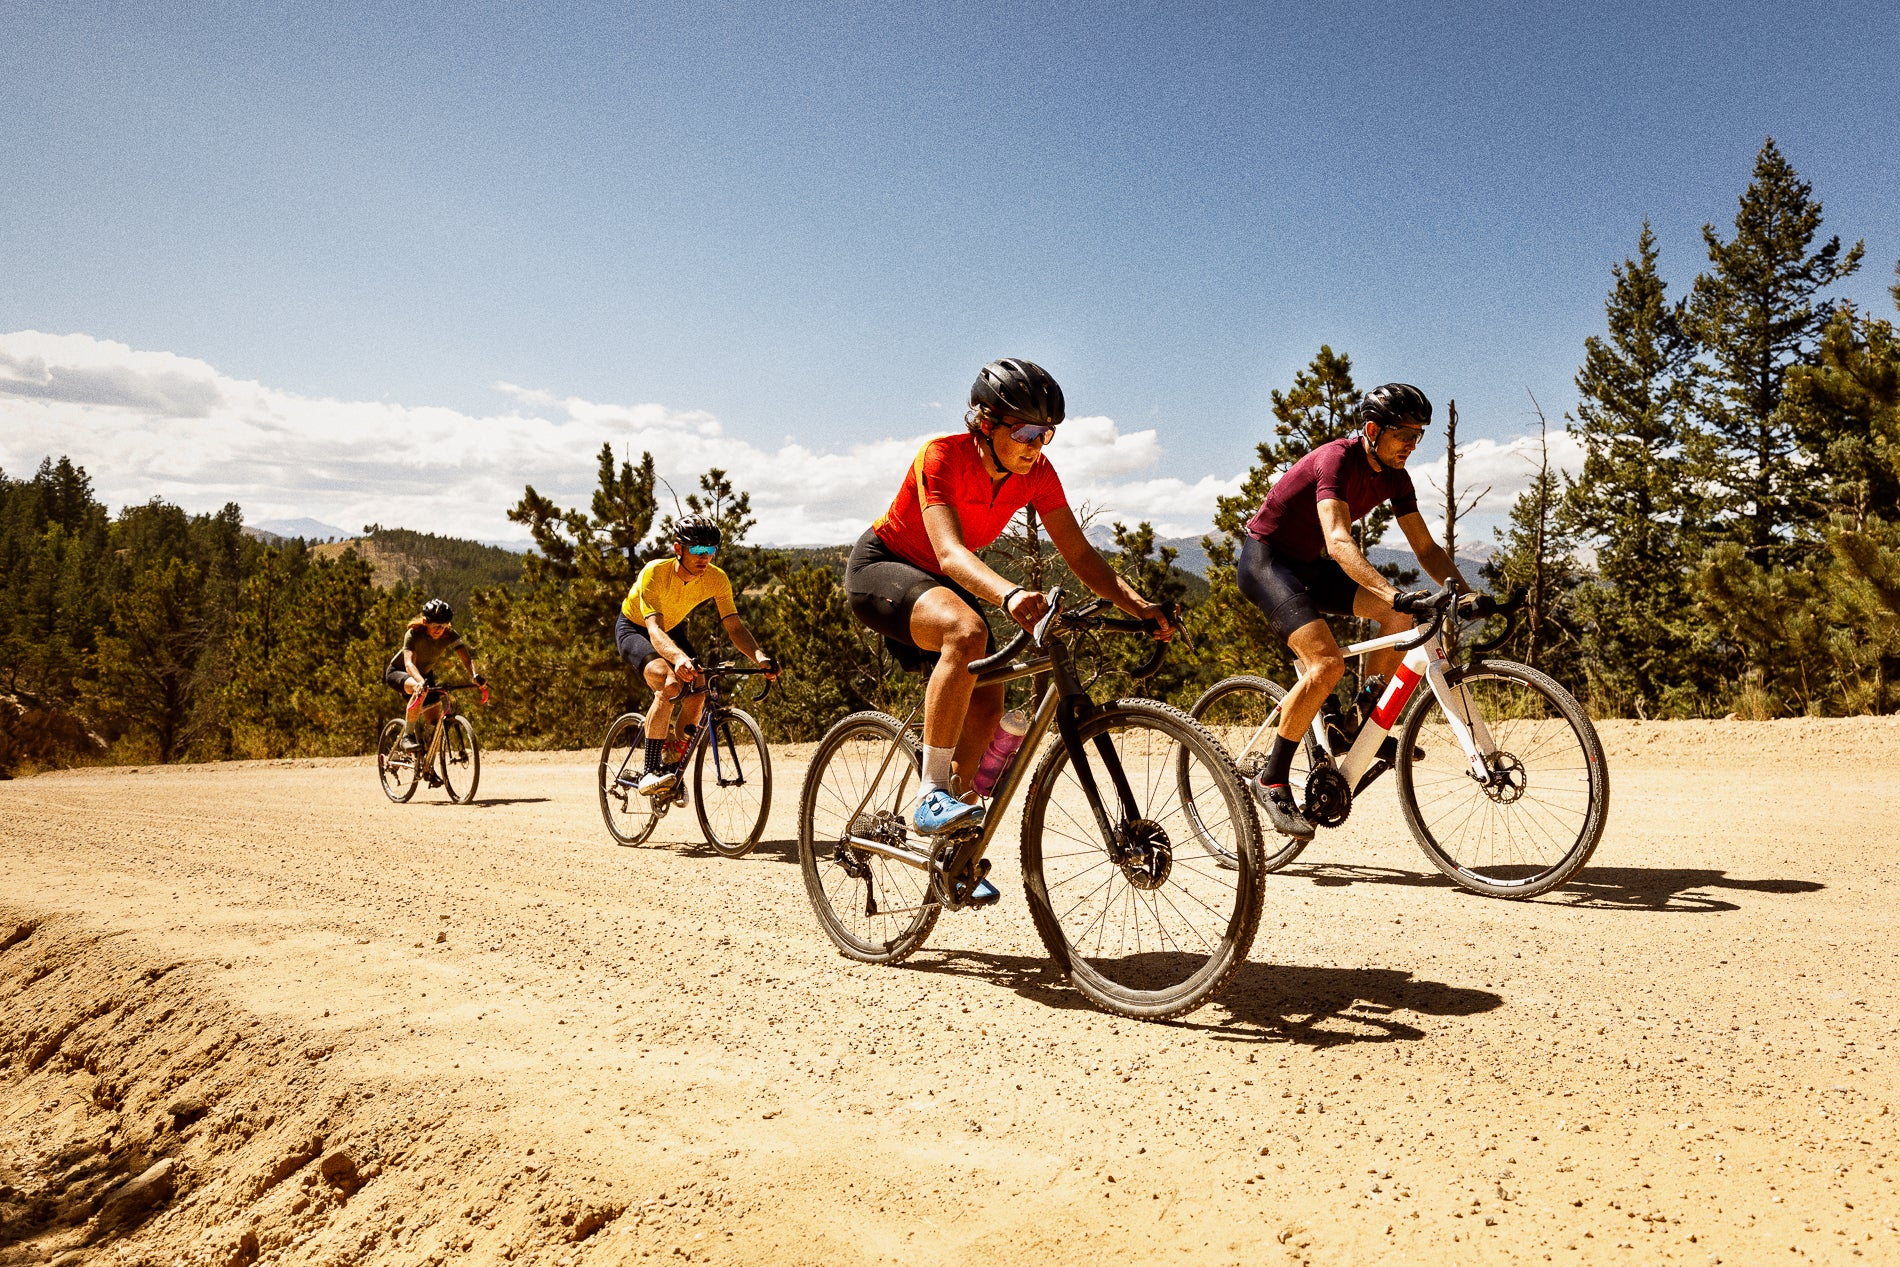 A group of people riding bikes on gravel roads